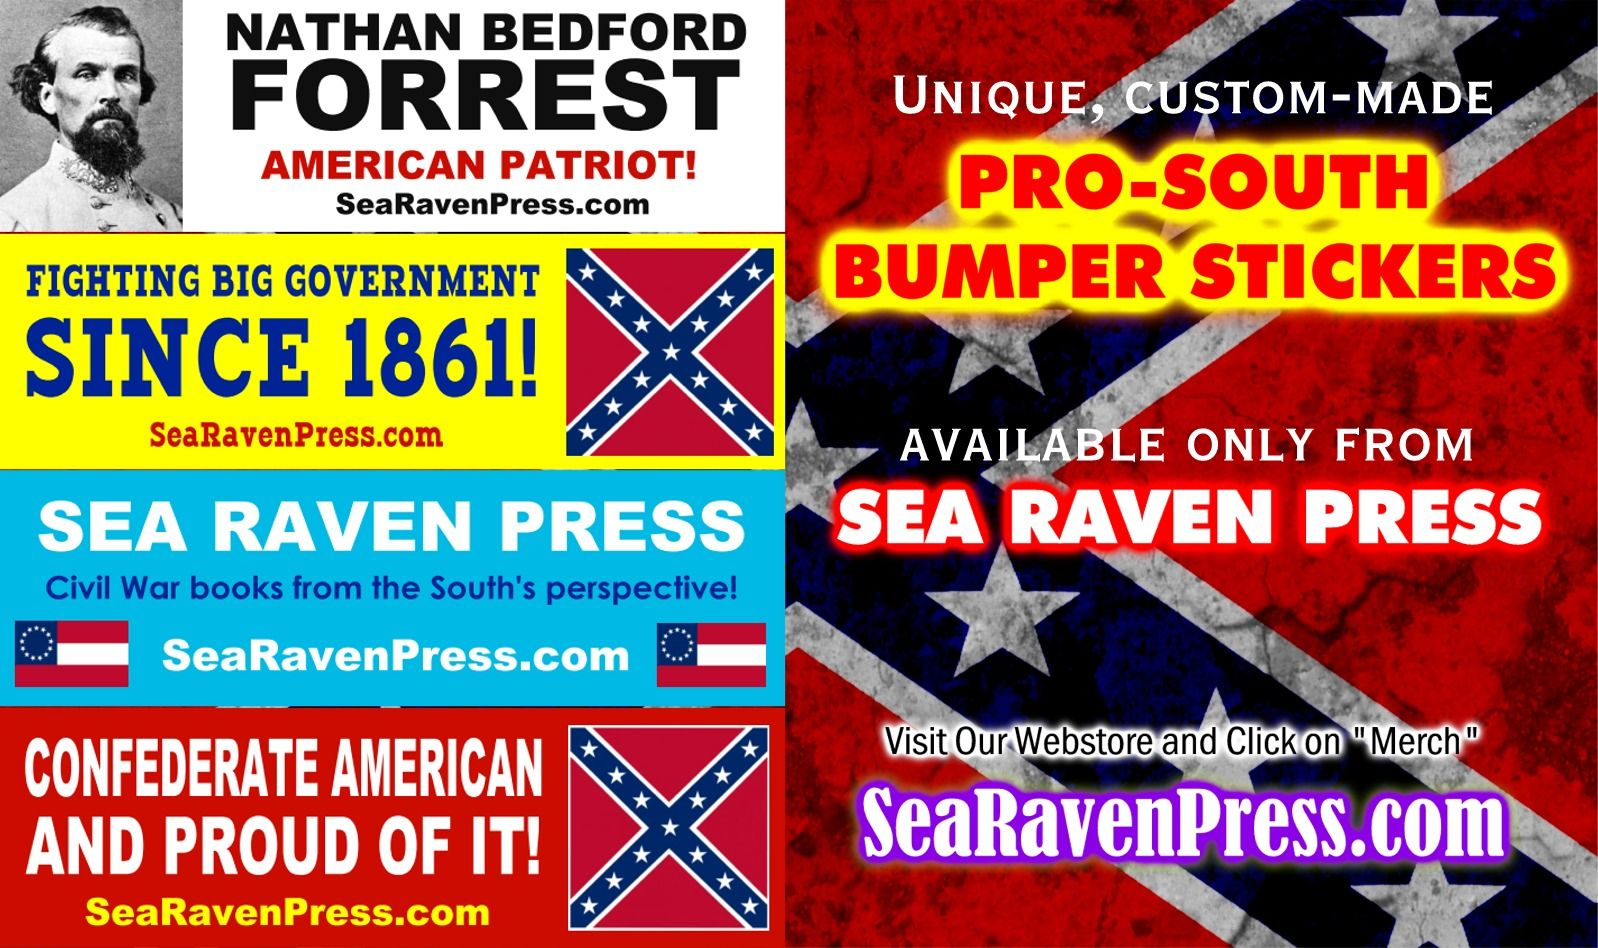 Looking for killer pro south bumper stickers check out our new bumper sticker webpage